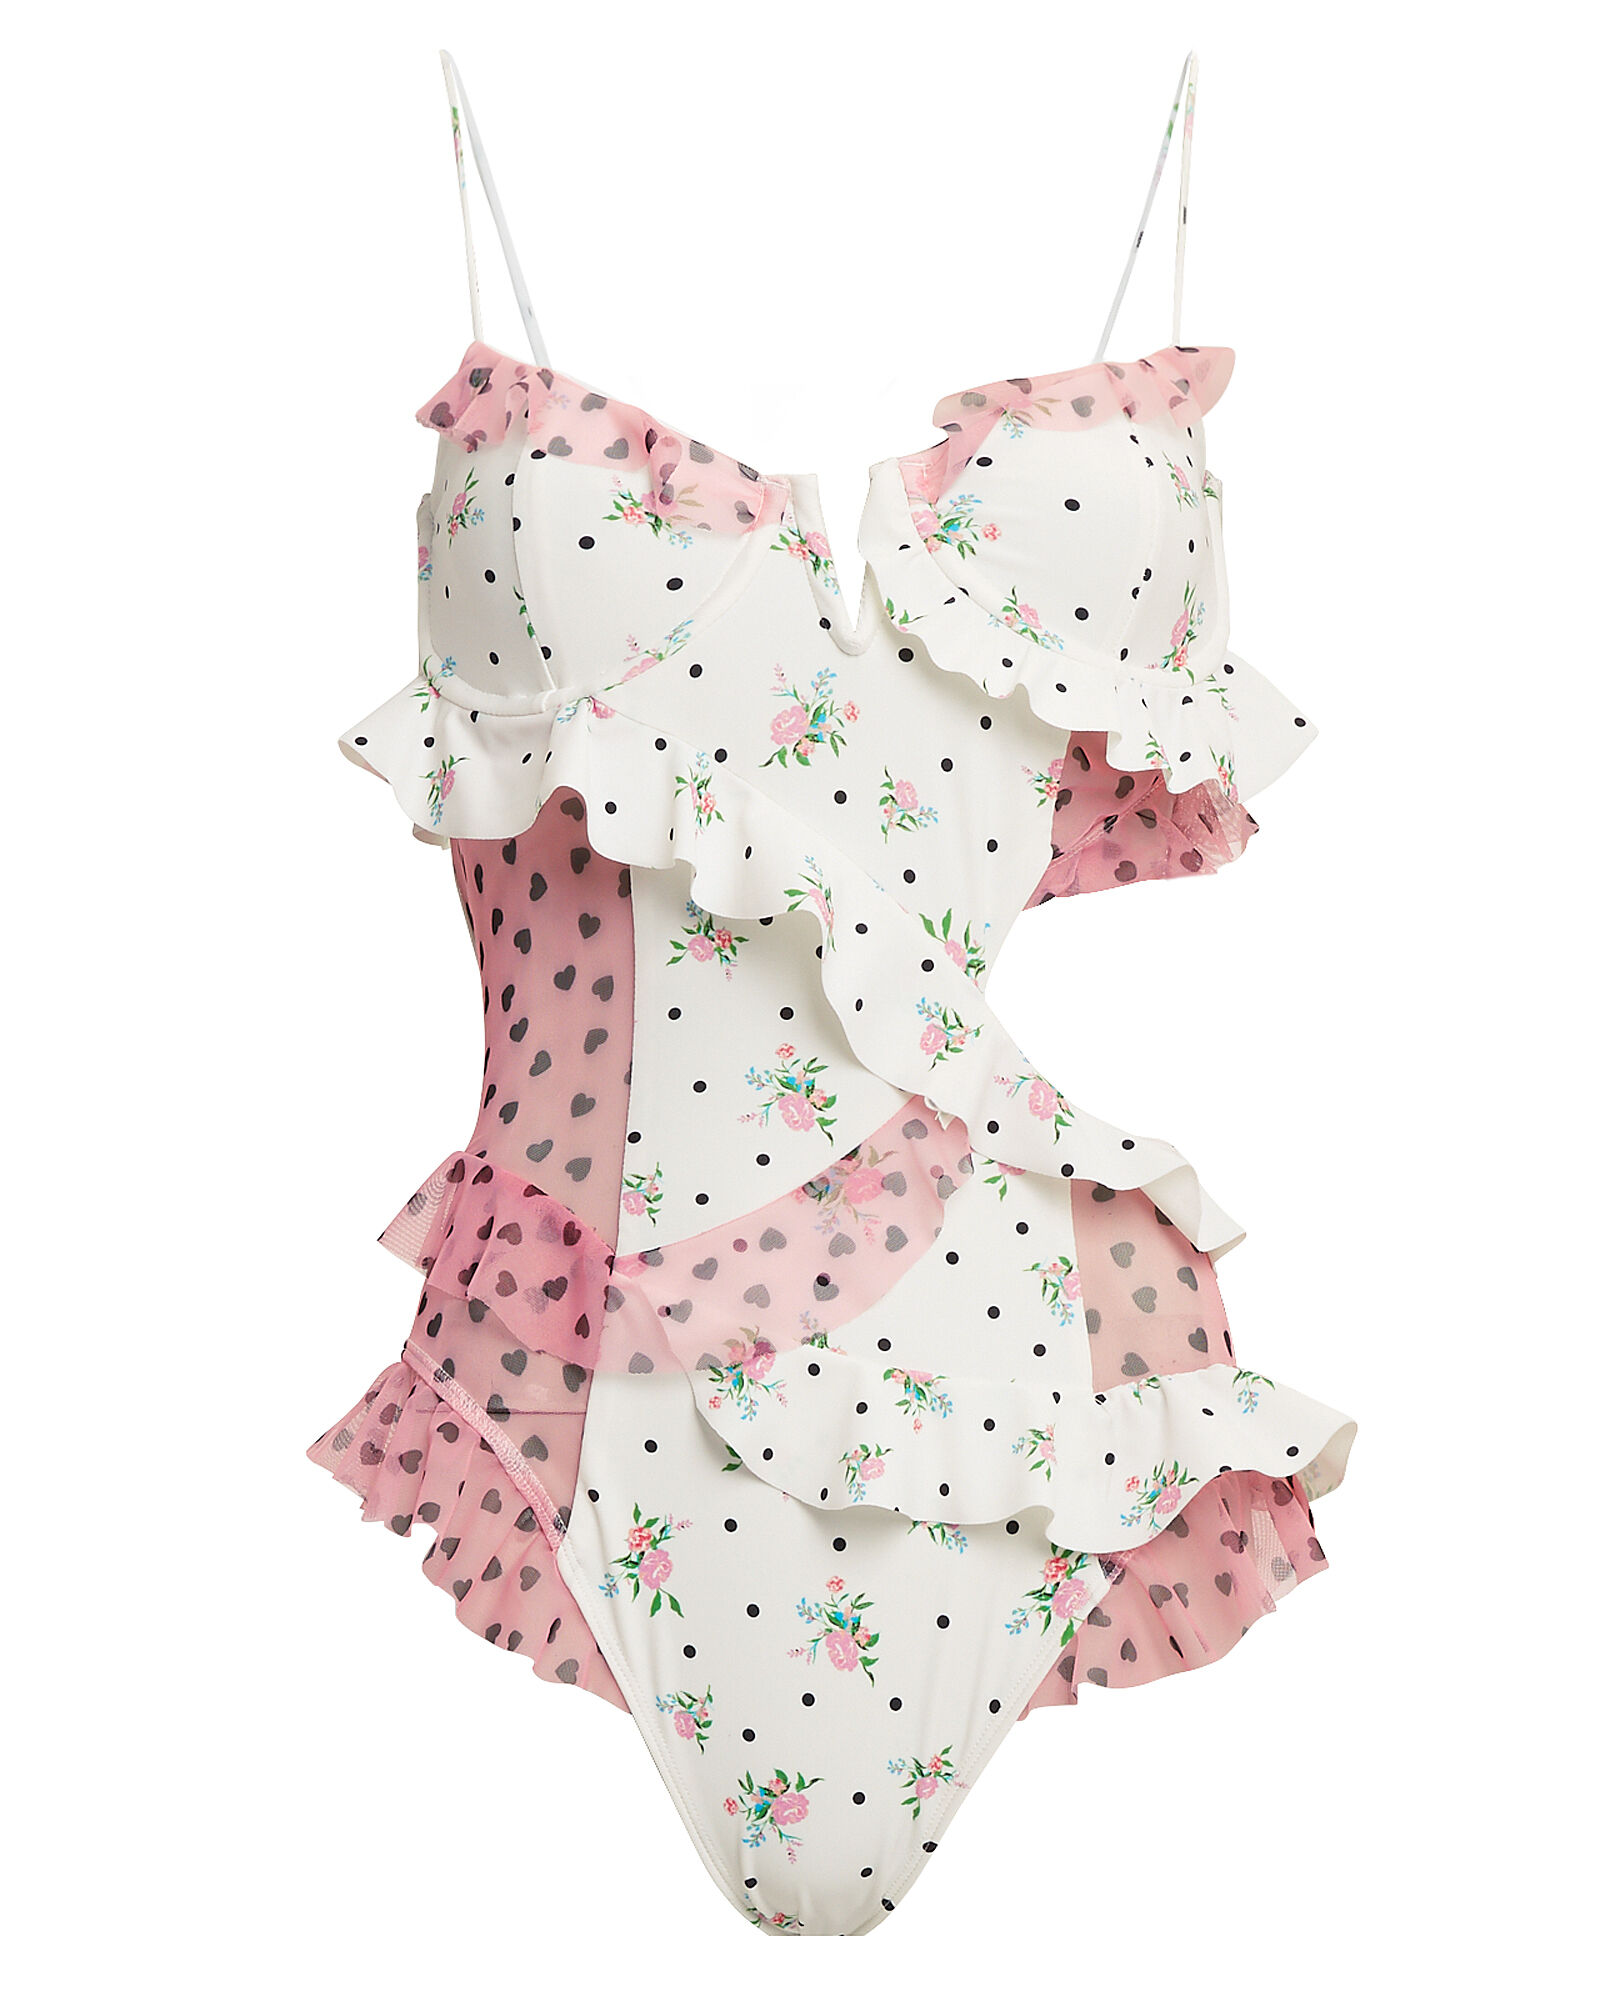 Naomi Ruffle One Piece Swimsuit, PINK FLORAL, hi-res